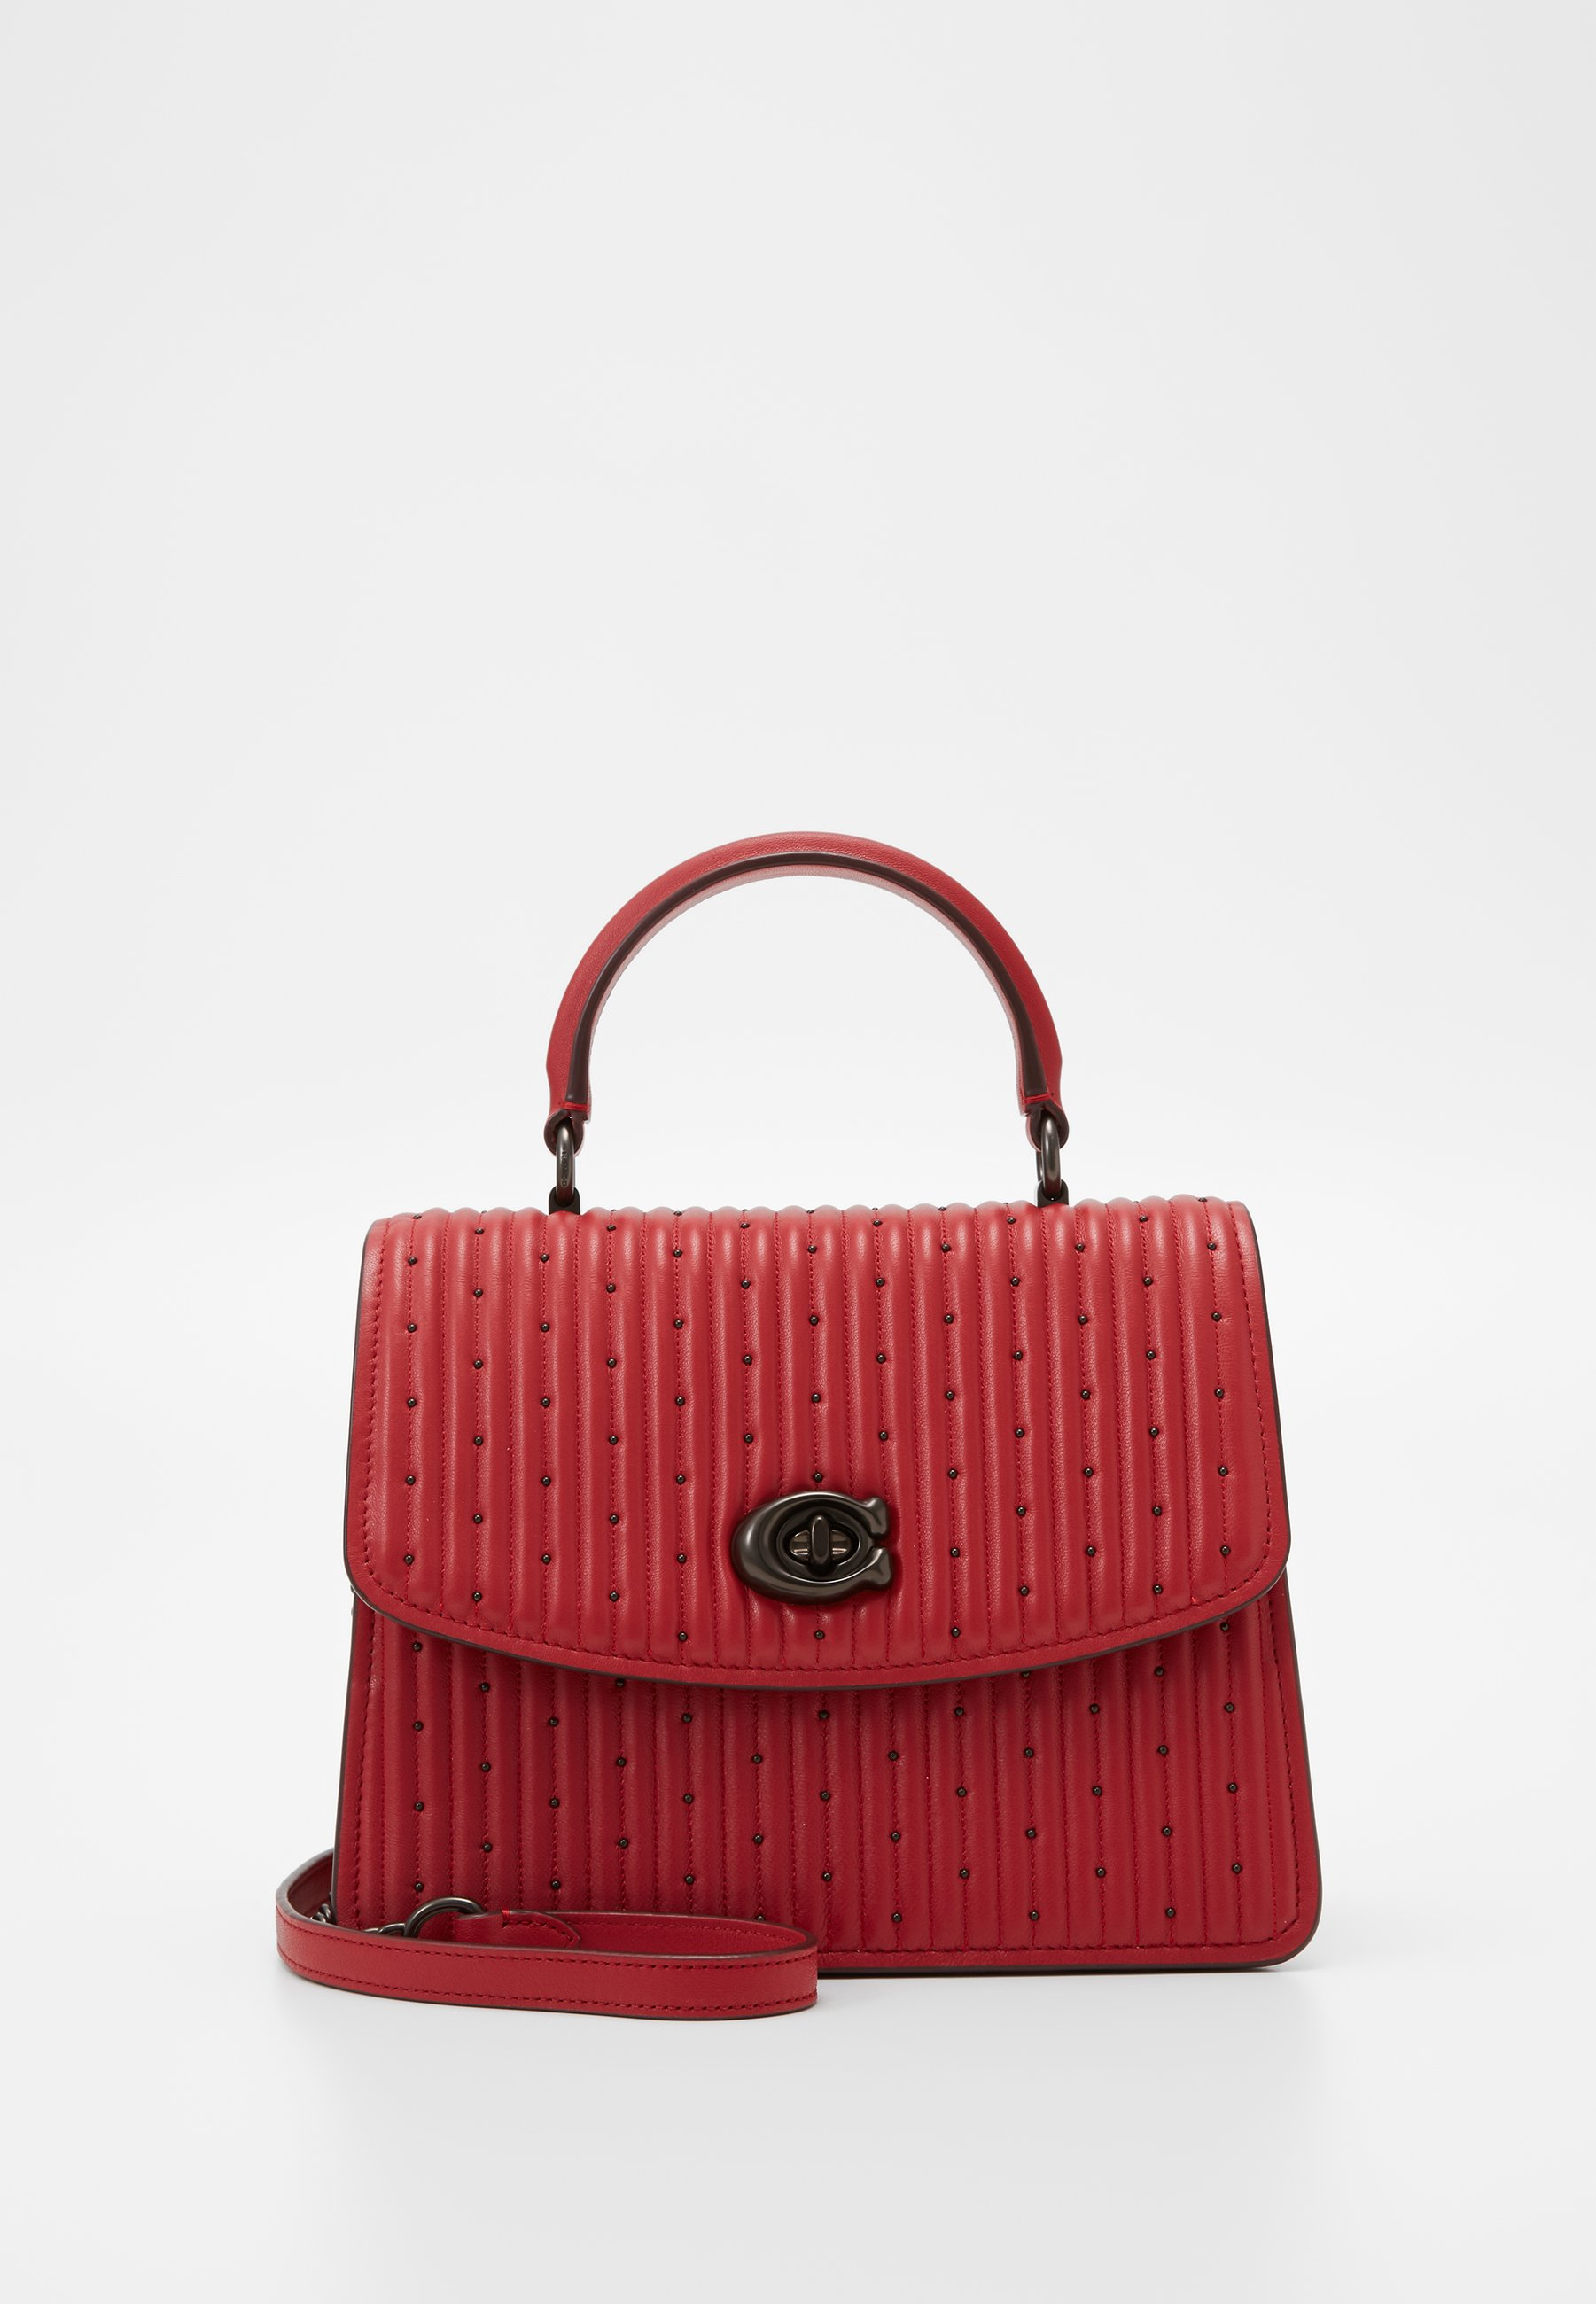 Coach Sac à main - red apple